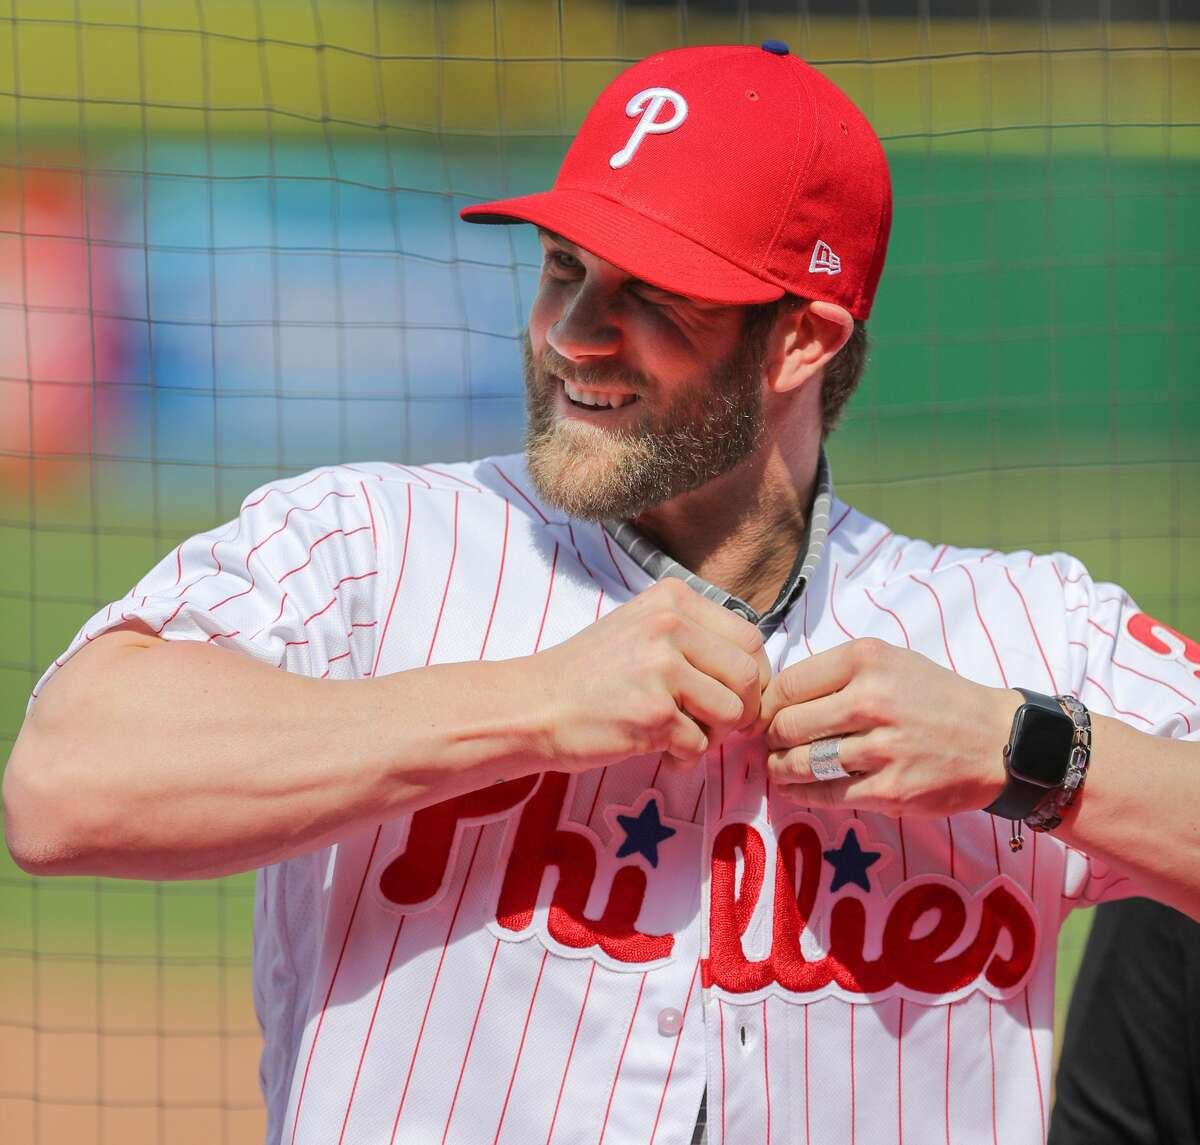 PHOTOS: Former Houston high school stars on Major League Baseball rosters CLEARWATER, FL - MARCH 2: Bryce Harper #3 of the Philadelphia Phillies puts on his new jersey during the press conference introducing Harper as a member of the Philadelphia Phillies on Saturday March 2, 2019 at Spectrum Field in Clearwater, Florida. (Photo by Mike Carlson/MLB Photos via Getty Images) >>>Browse through the gallery for a look at players on 2019 MLB rosters who played high school baseball in the Houston area ...